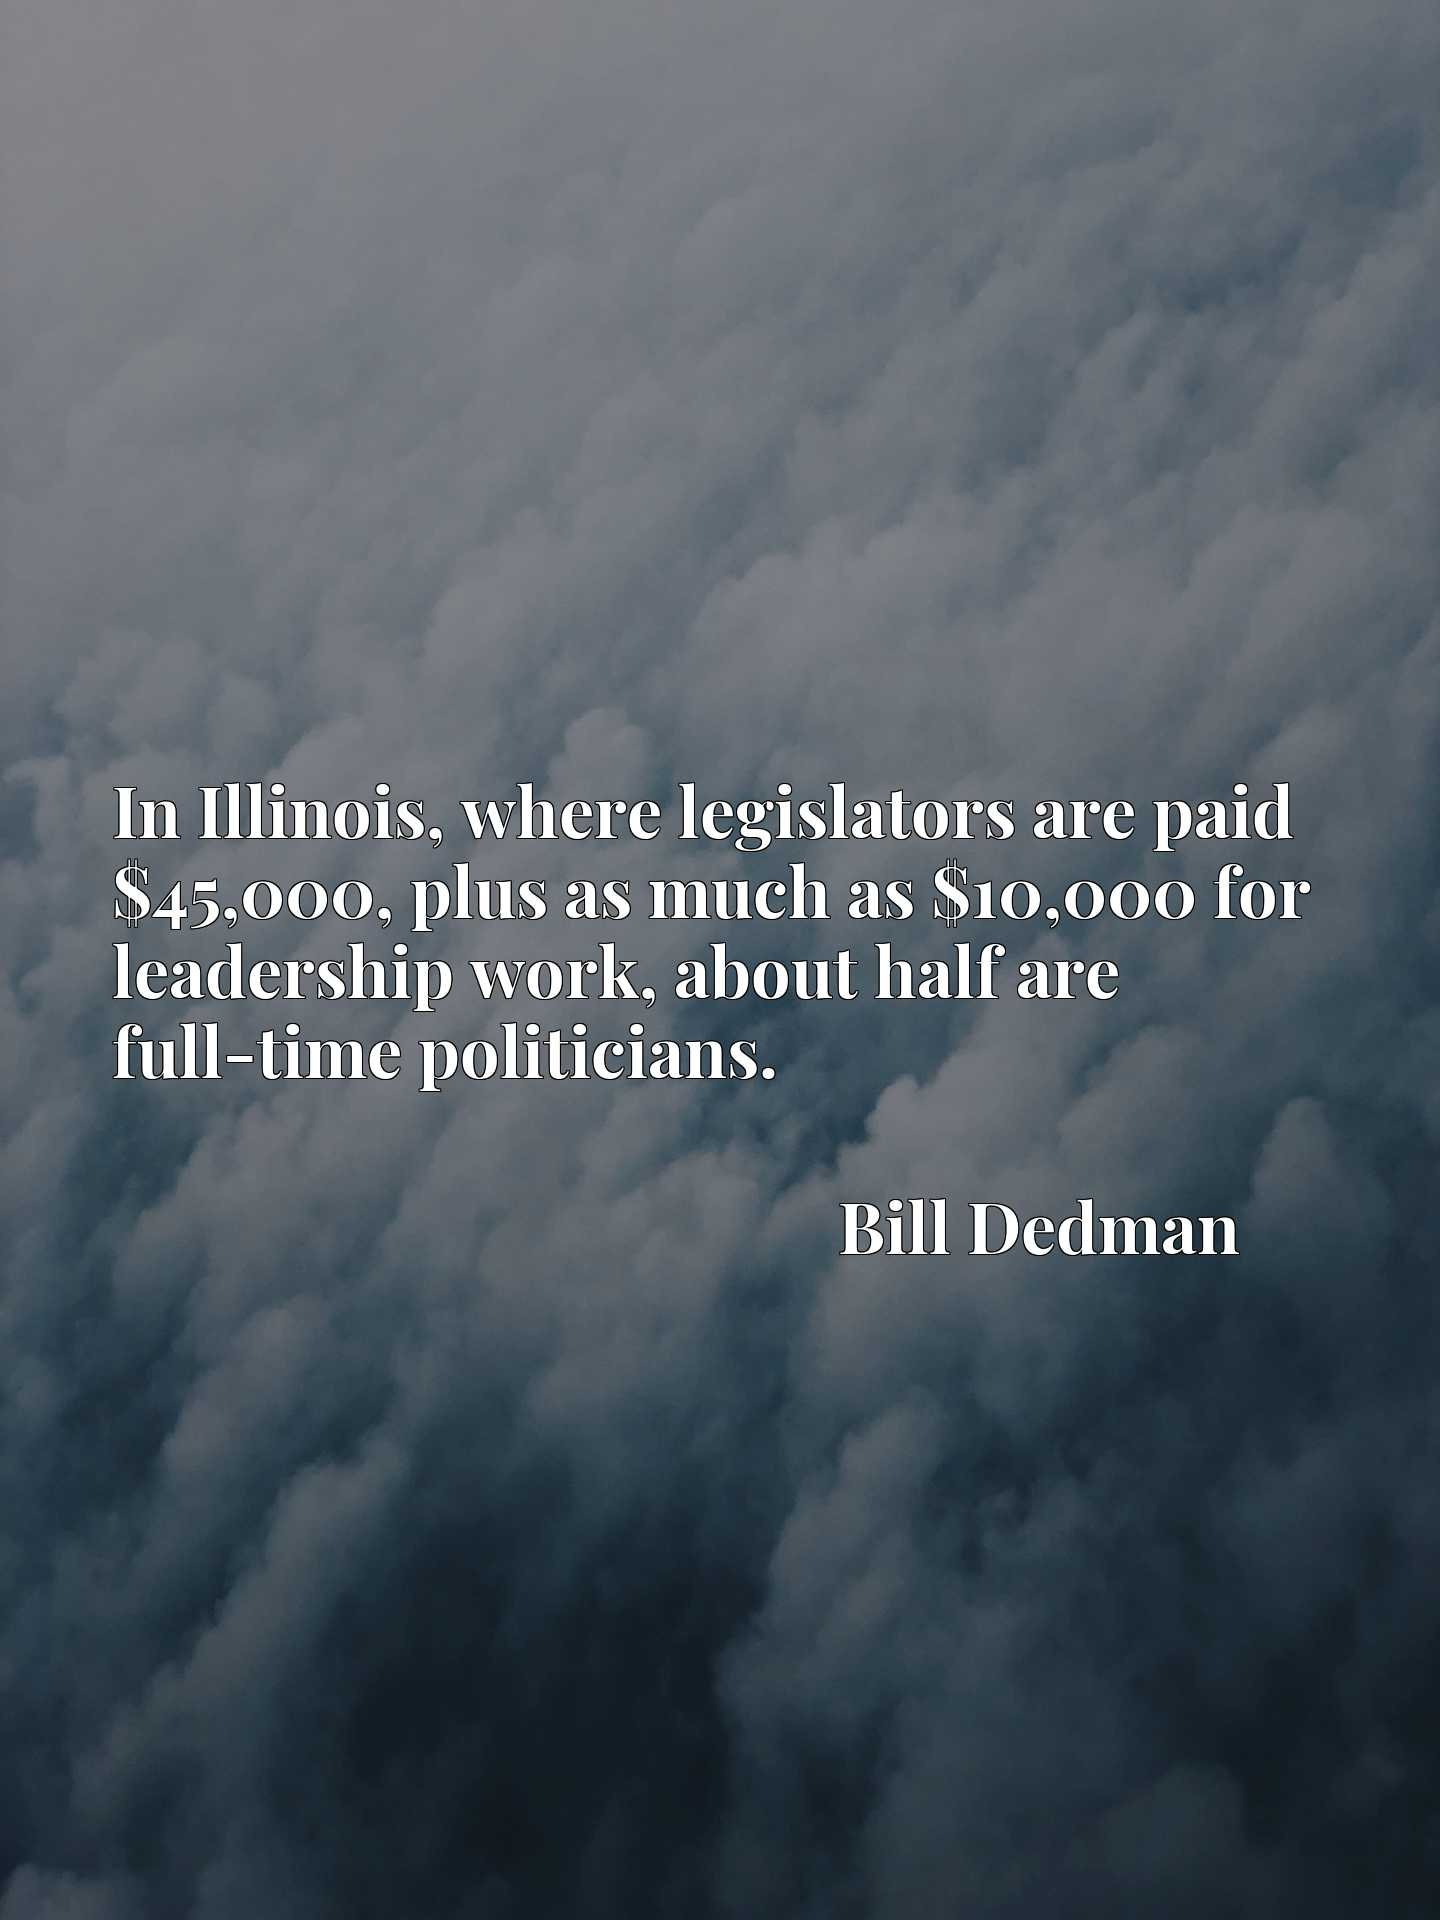 Quote Picture :In Illinois, where legislators are paid $45,000, plus as much as $10,000 for leadership work, about half are full-time politicians.